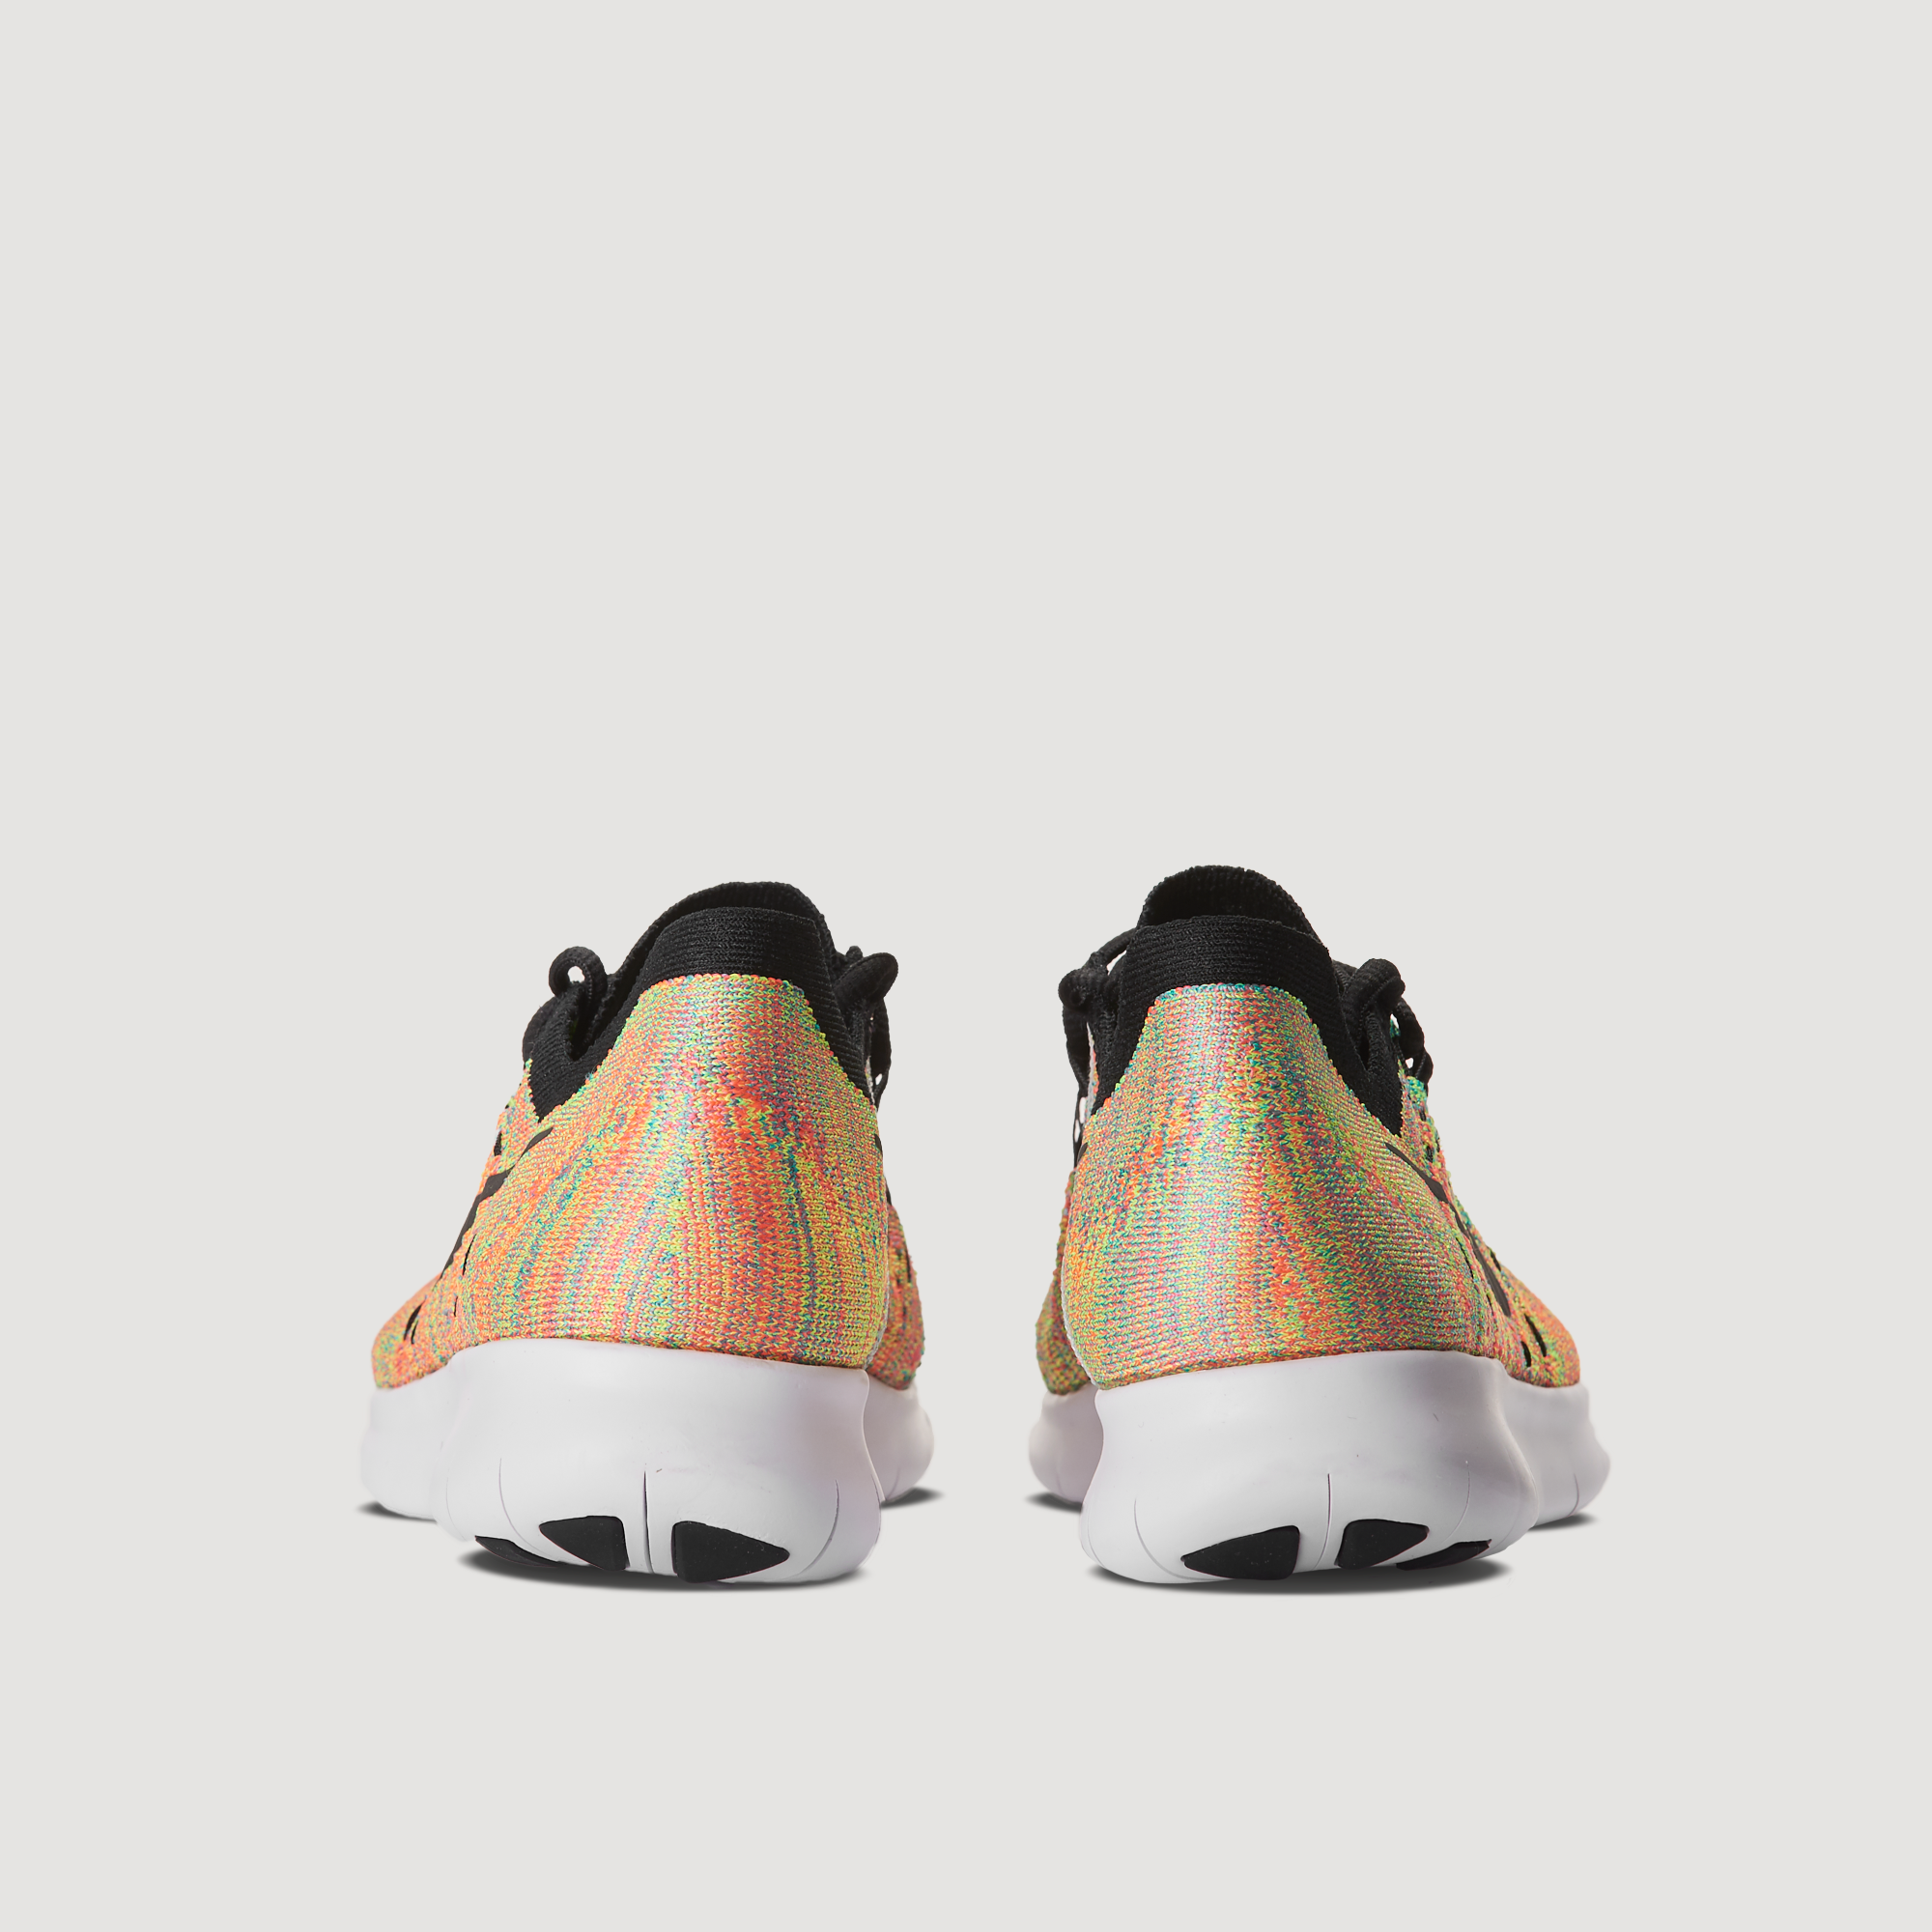 Free RN Flyknit 2018 Pig Shoes